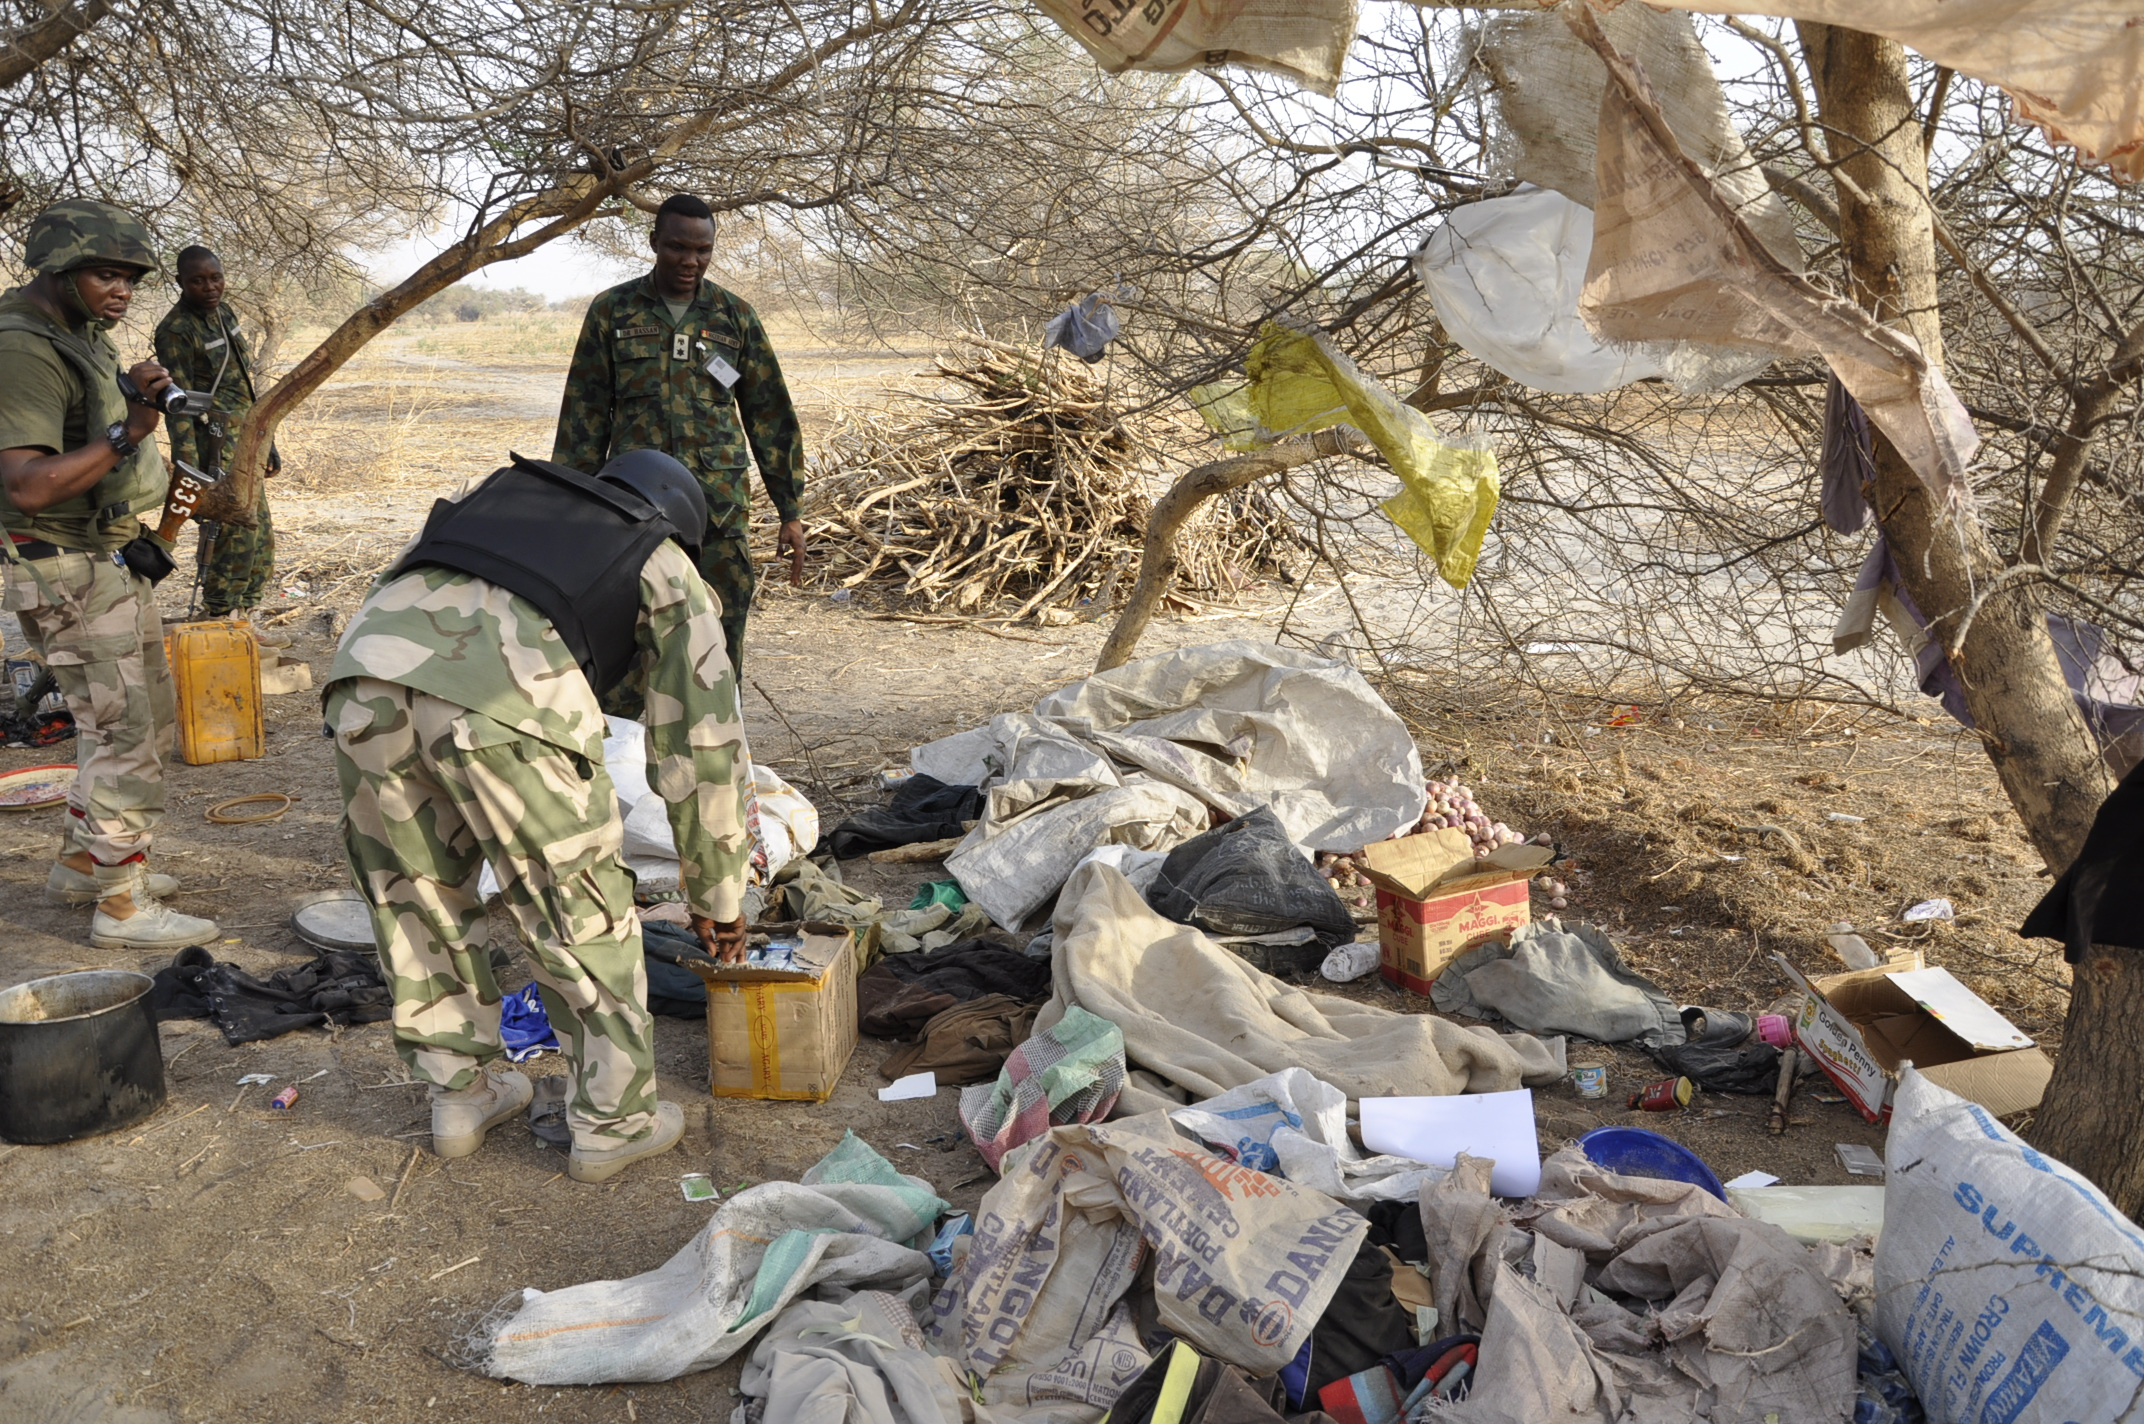 Insurgents camp destroyed by troops of 212 in Marte recntly (1)